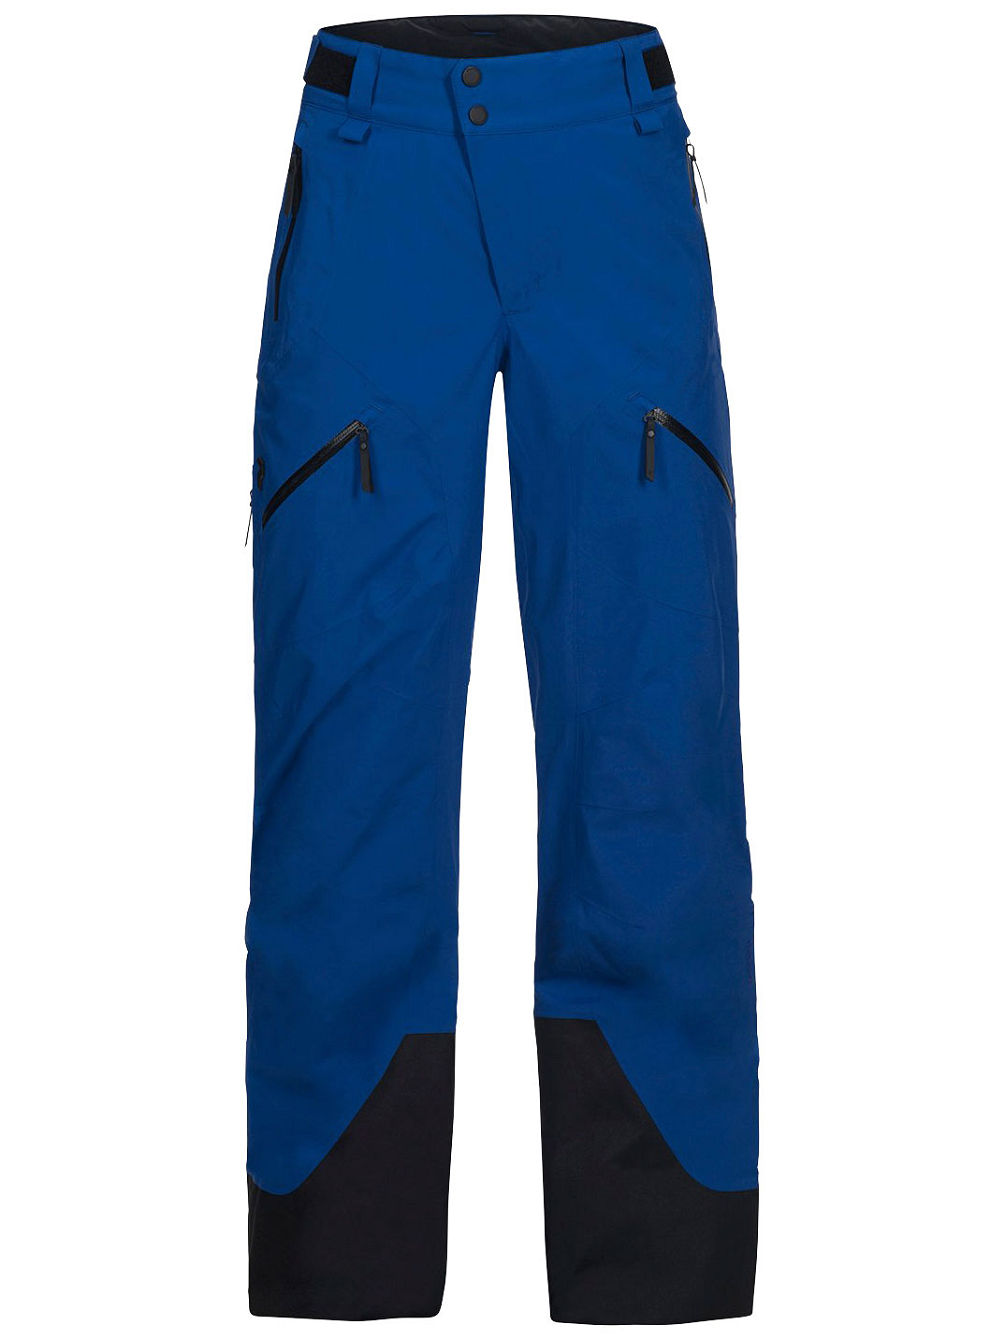 Gravity 2Layer Pants